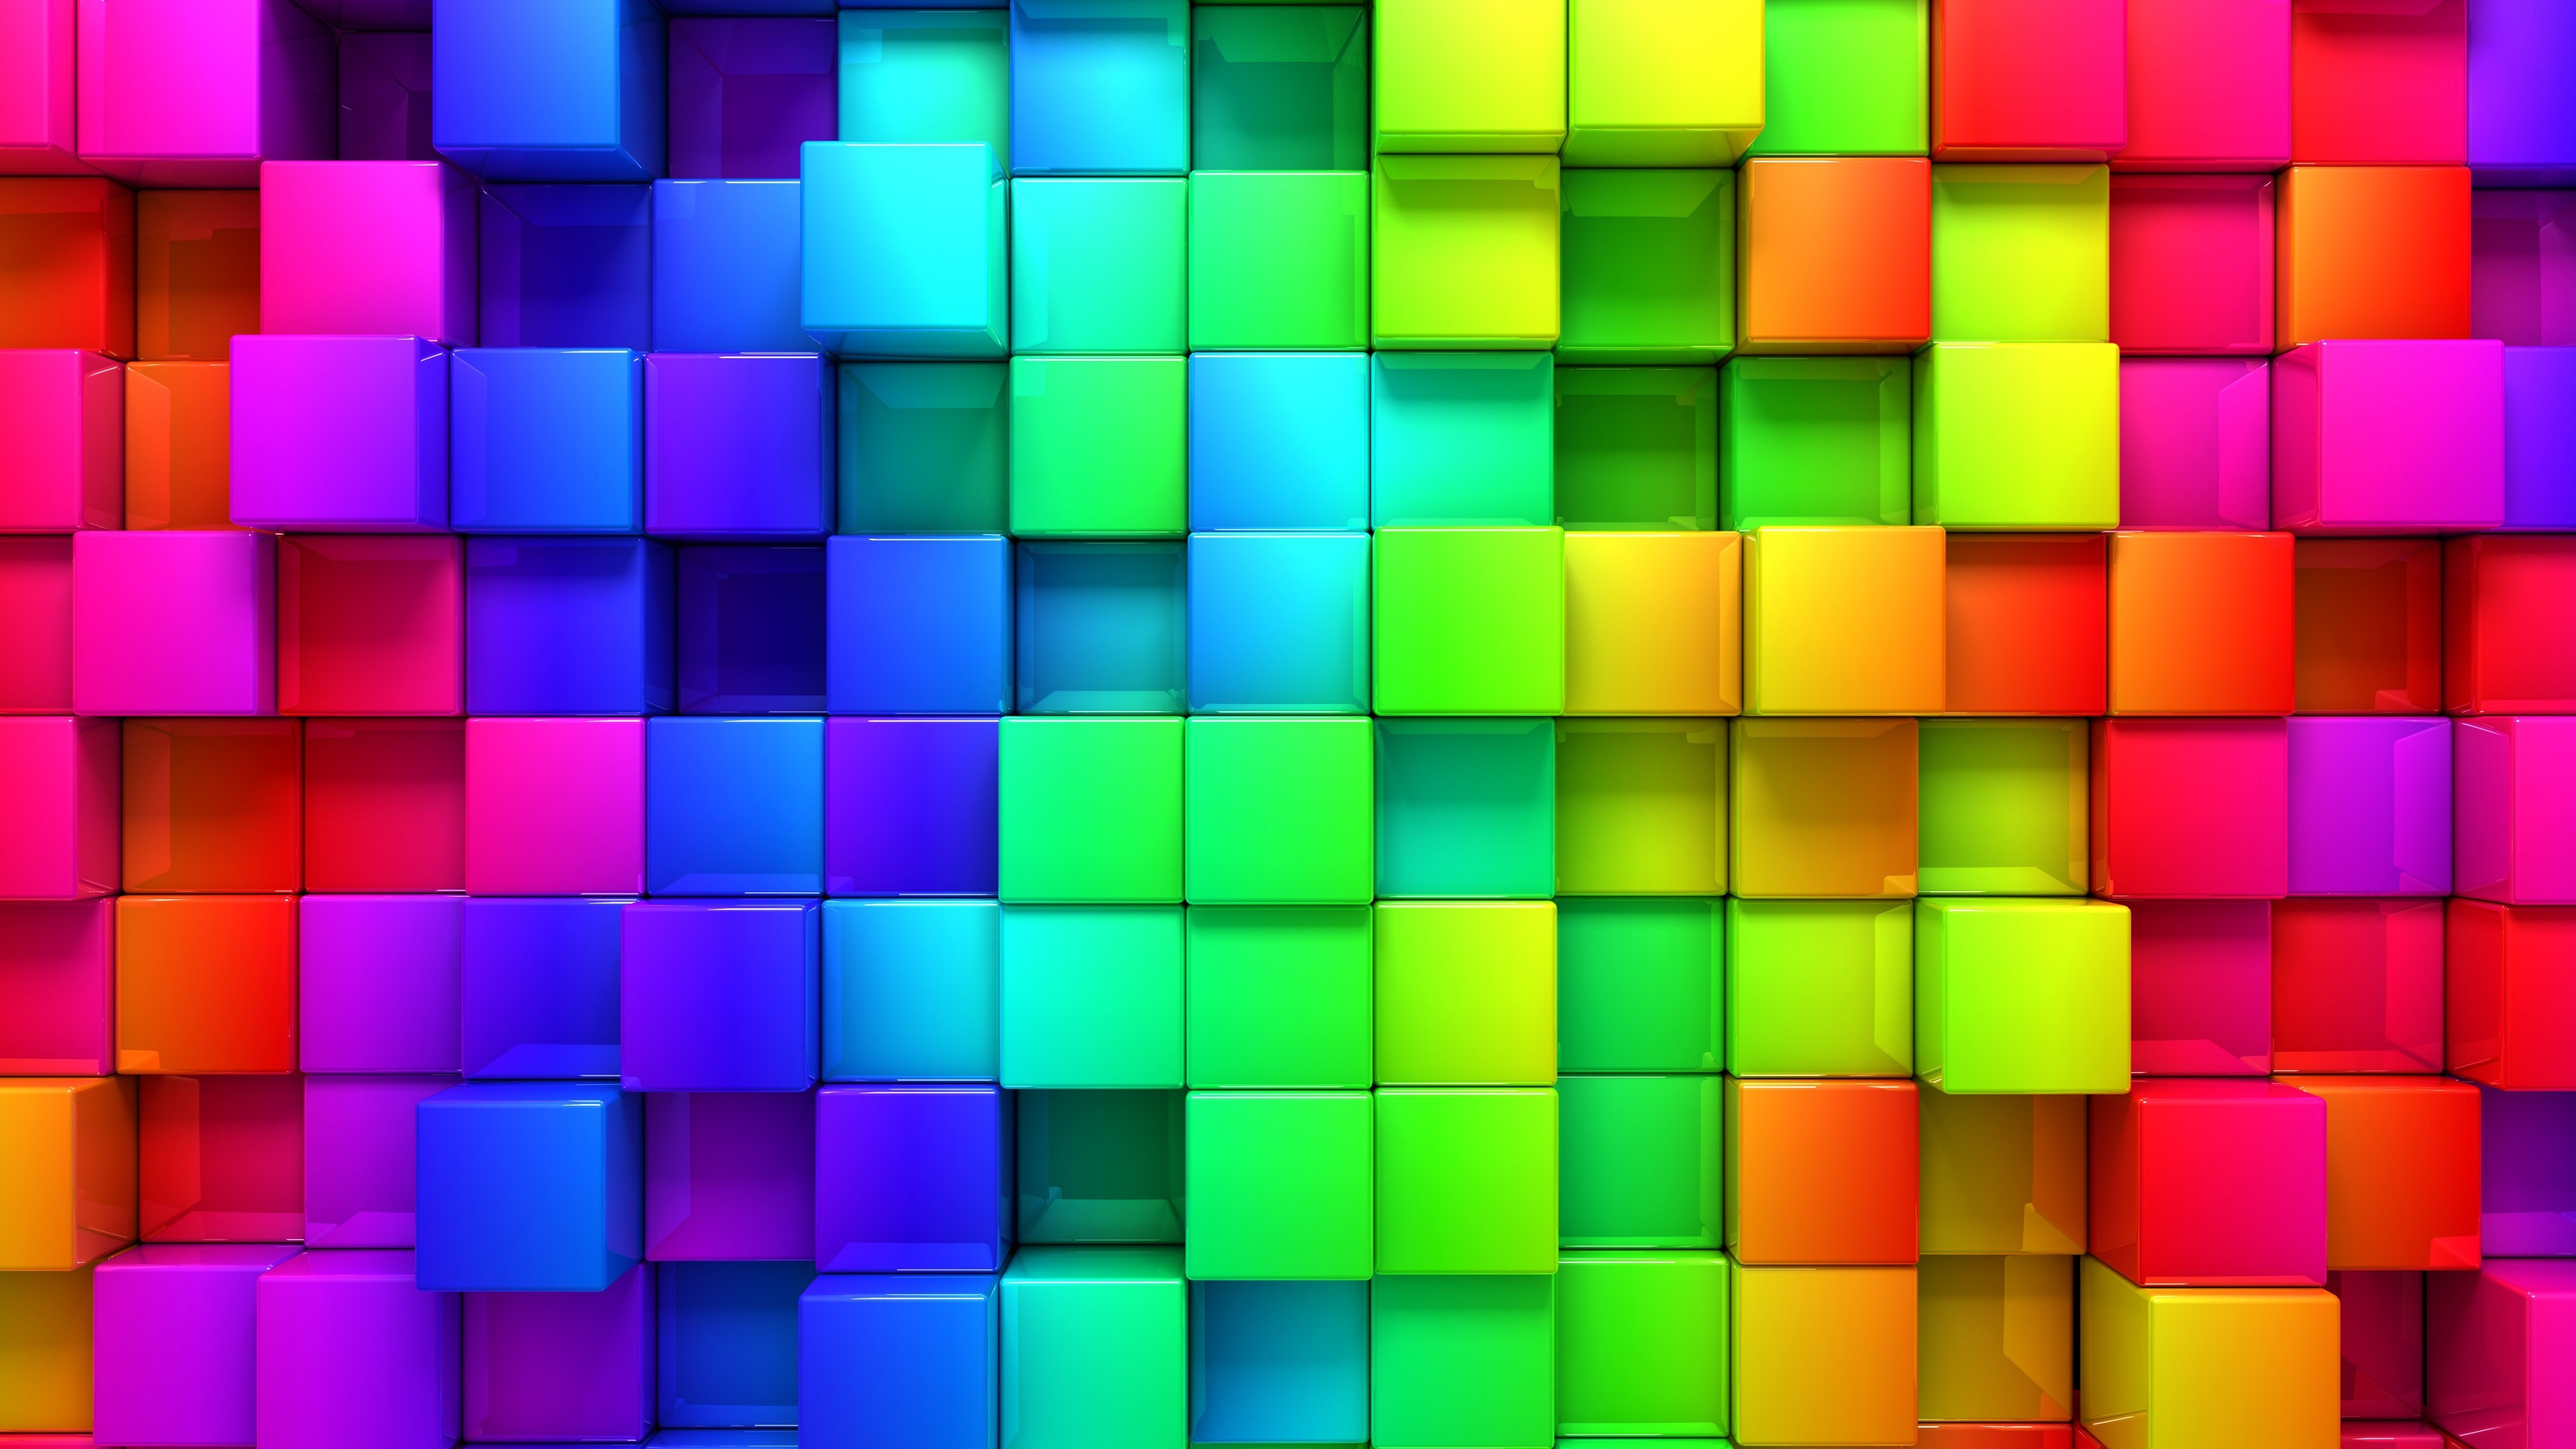 56 4k Hd Wallpapers Download Free Amazing Backgrounds For